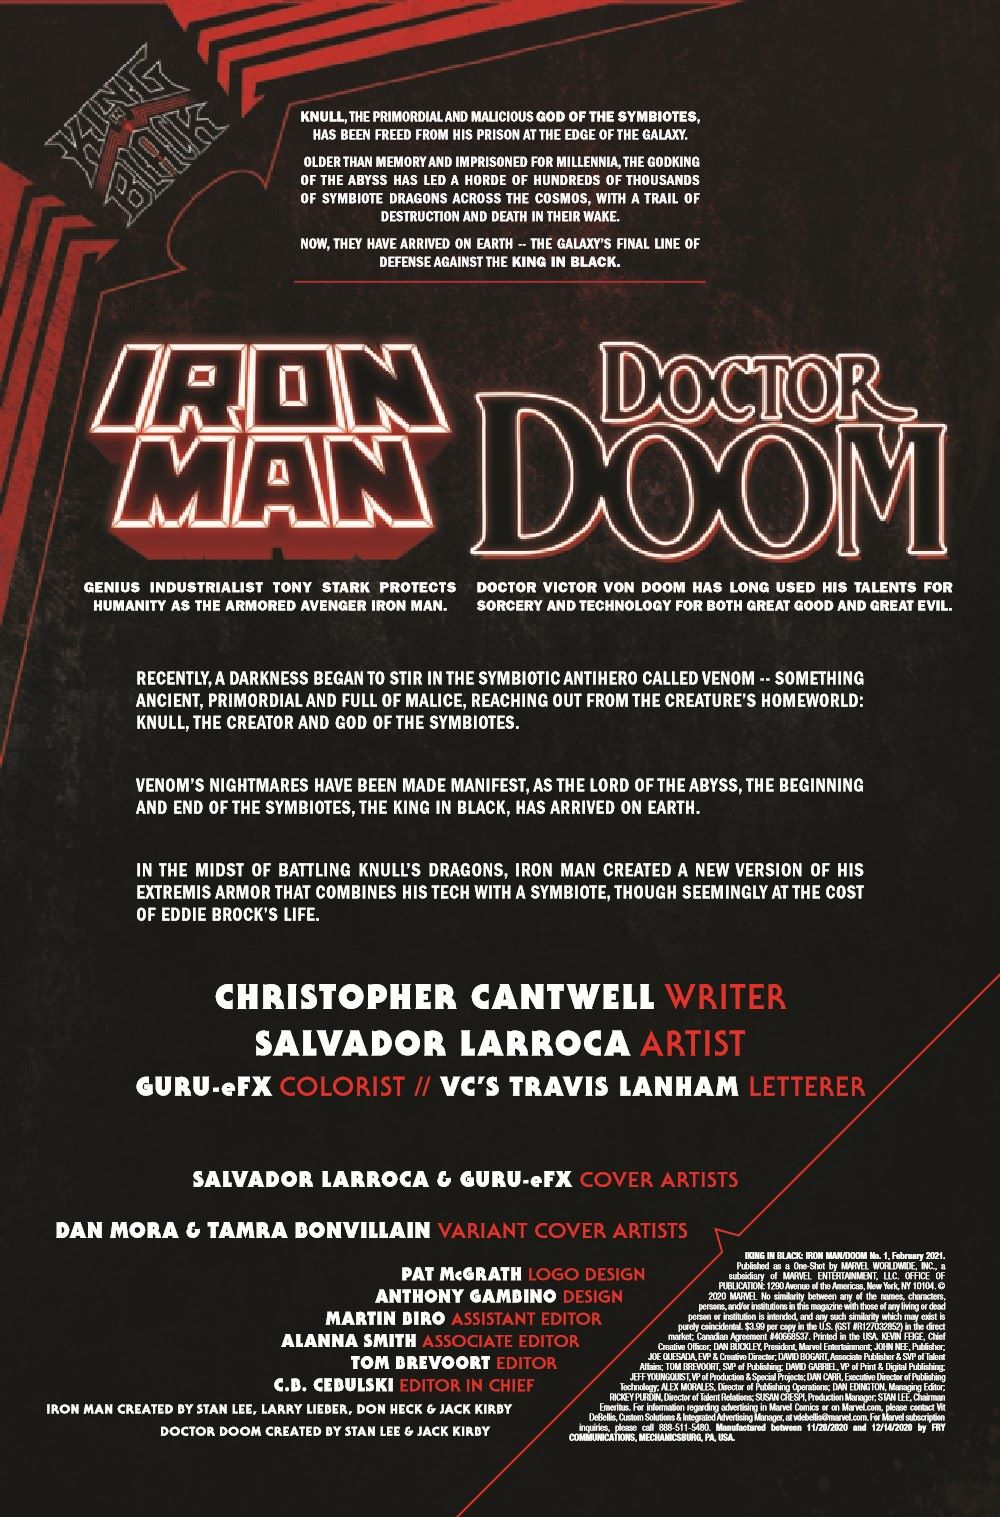 IMKIB2020001_Preview-2 ComicList Previews: KING IN BLACK IRON MAN DOCTOR DOOM #1